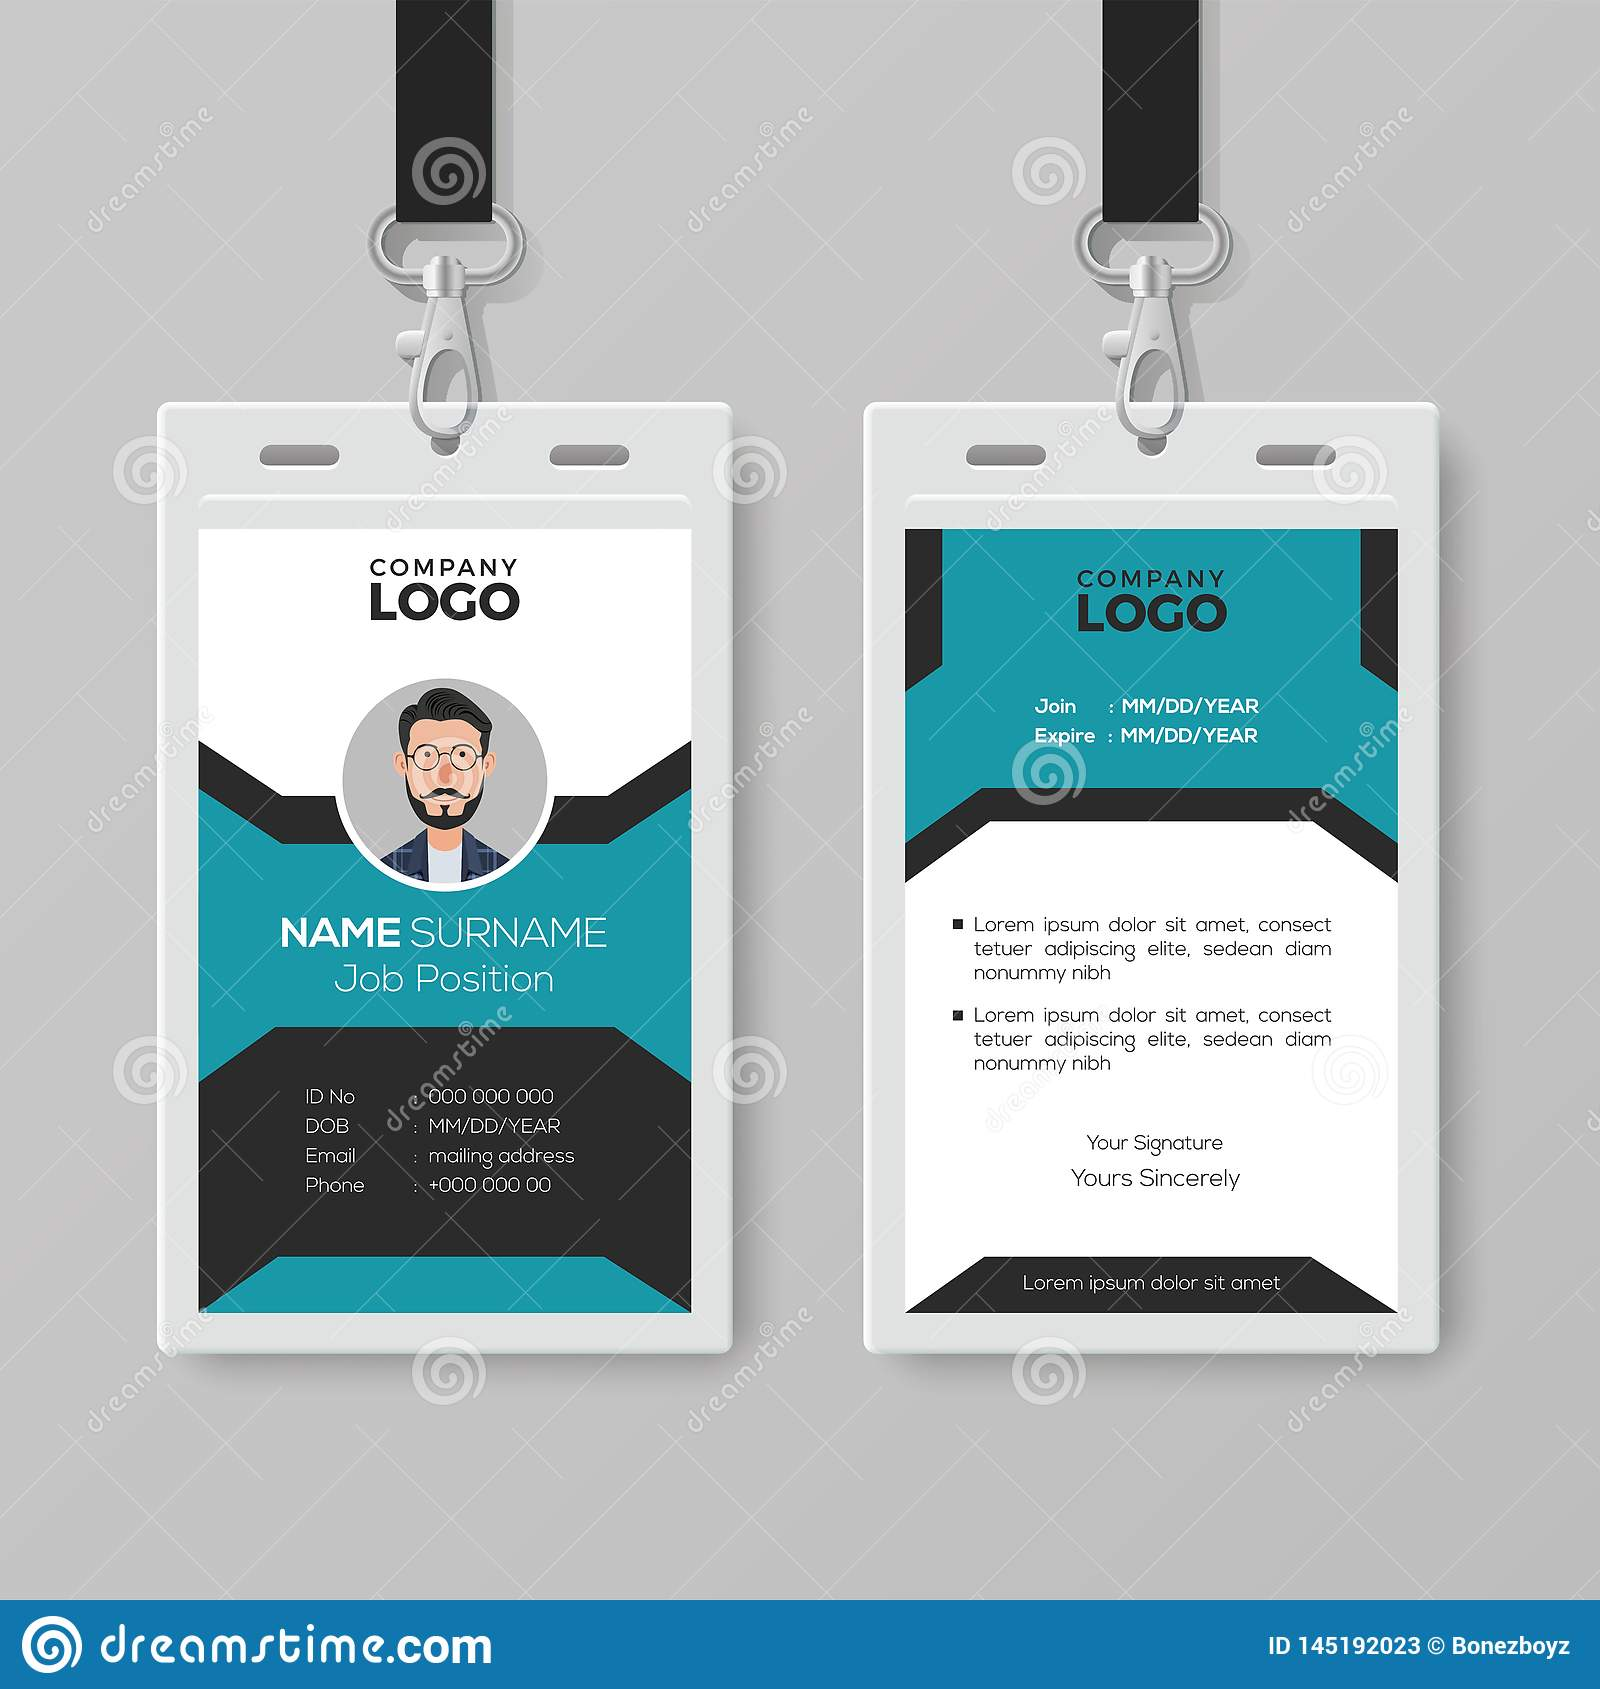 Employee Identification Card Template Free Download from thumbs.dreamstime.com